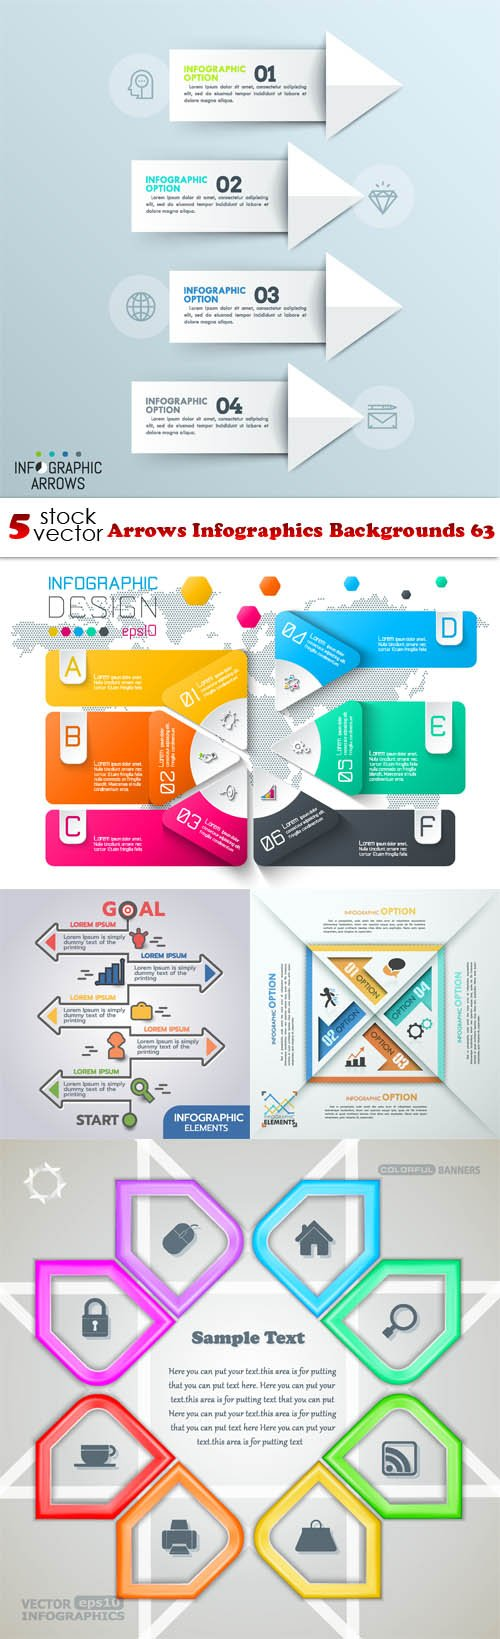 Vectors - Arrows Infographics Backgrounds 63